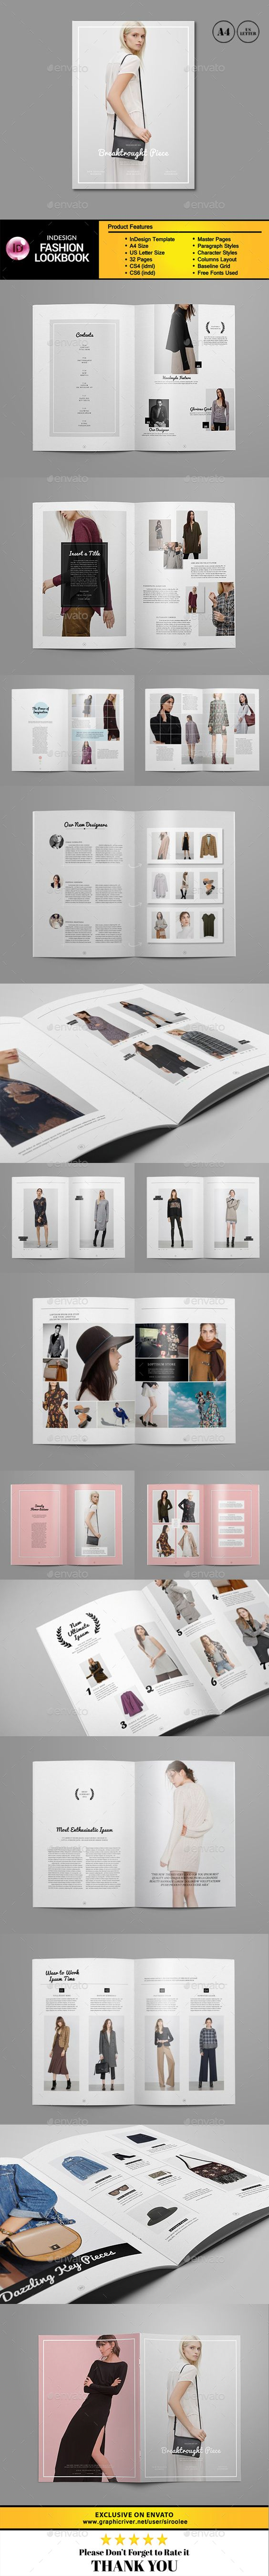 Fashion Lookbook Magazine